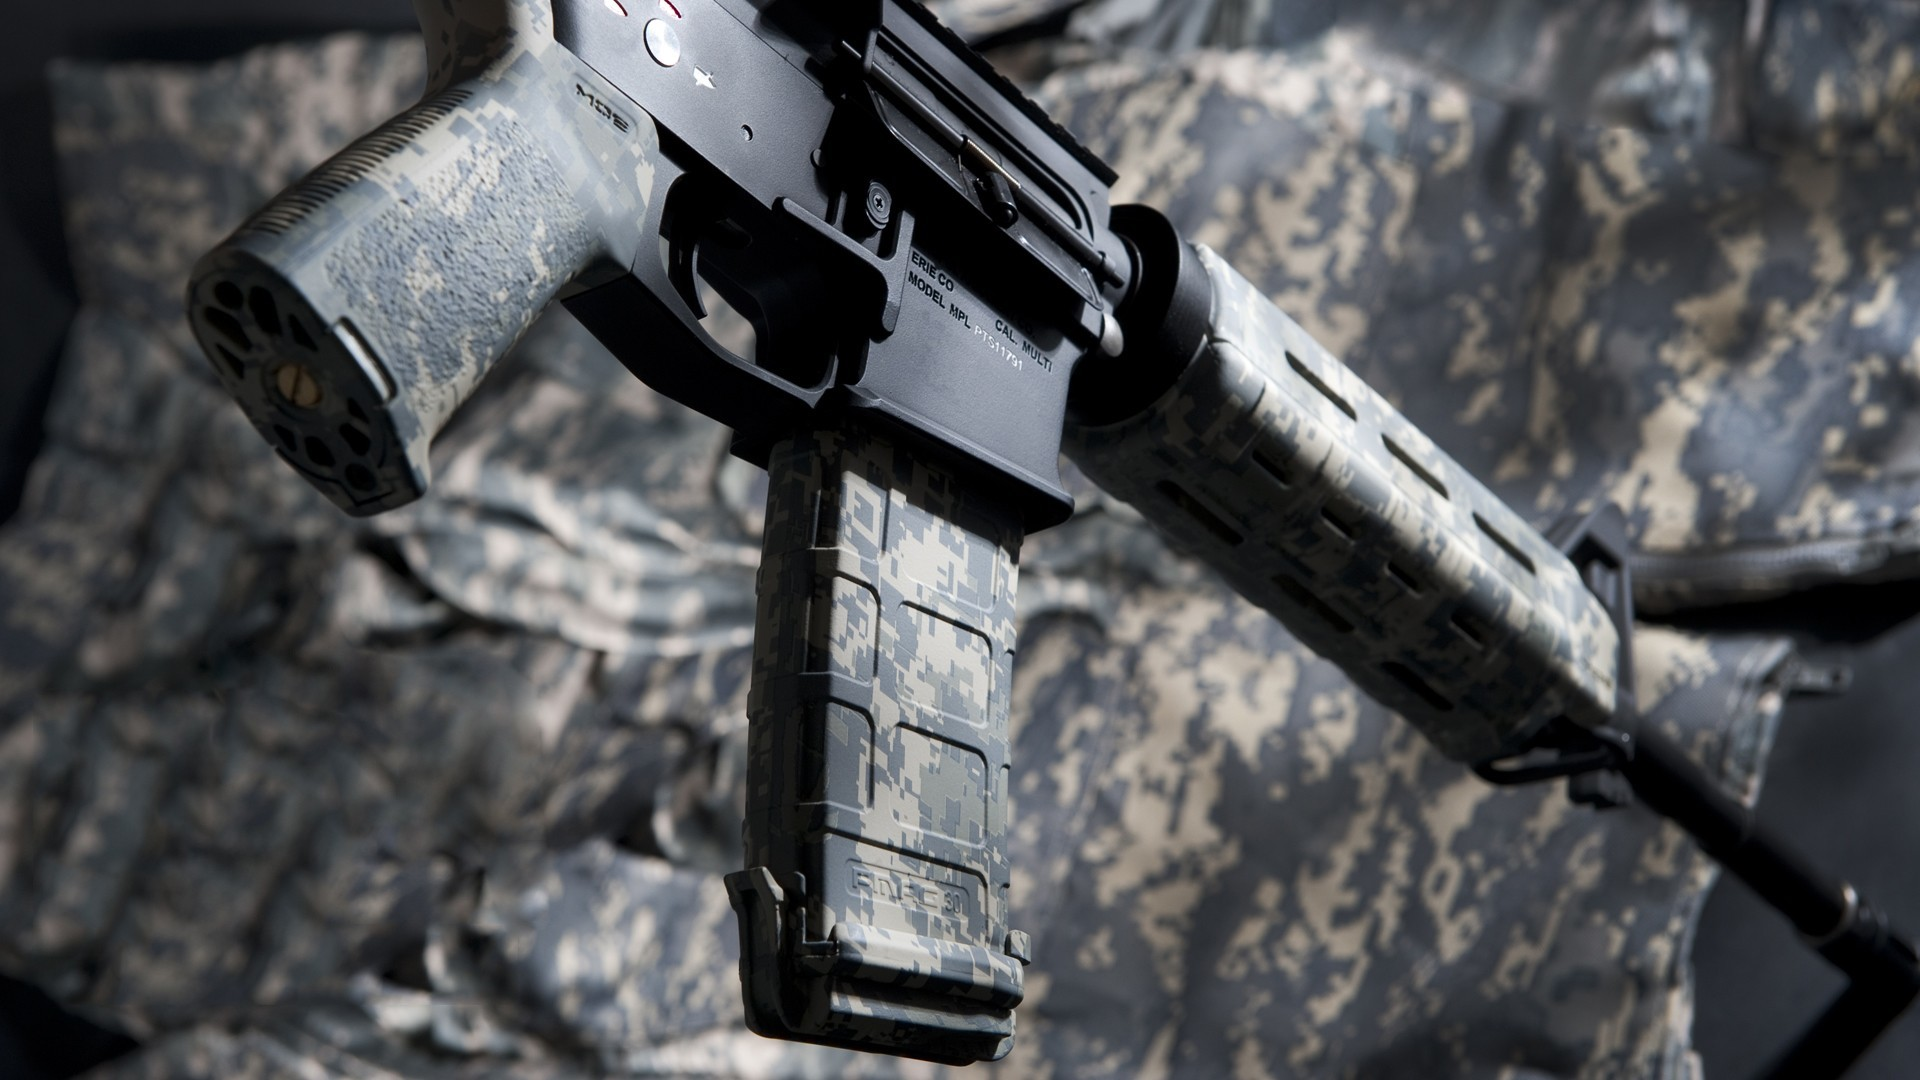 Rifles weapons camouflage airsoft HD Wallpaper